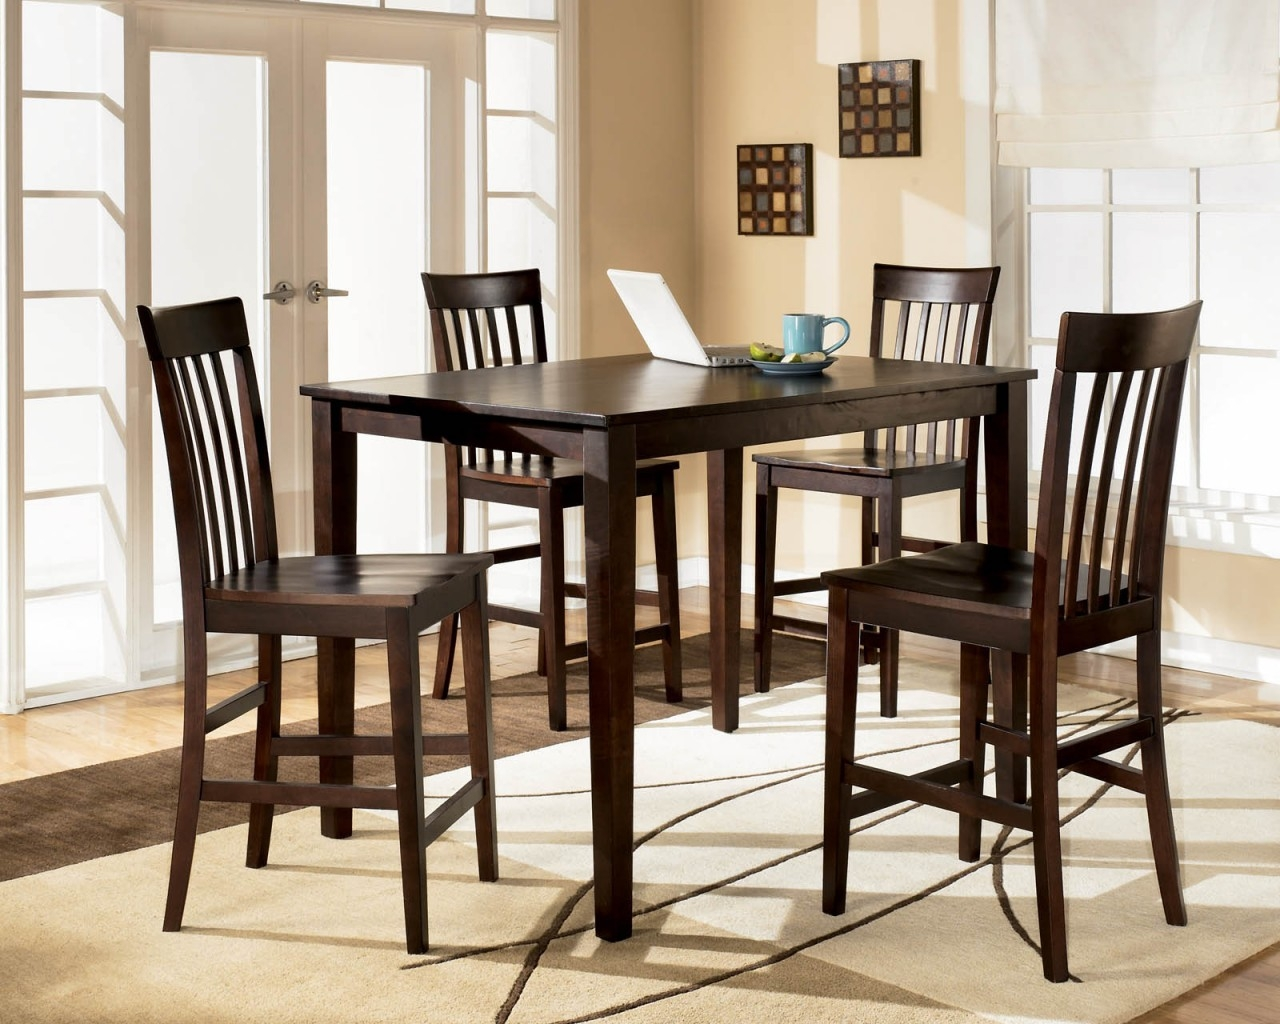 Picture of: Tall Dining Room Tables With Bench Amazon Table 8 Chairs Extendable Layjao